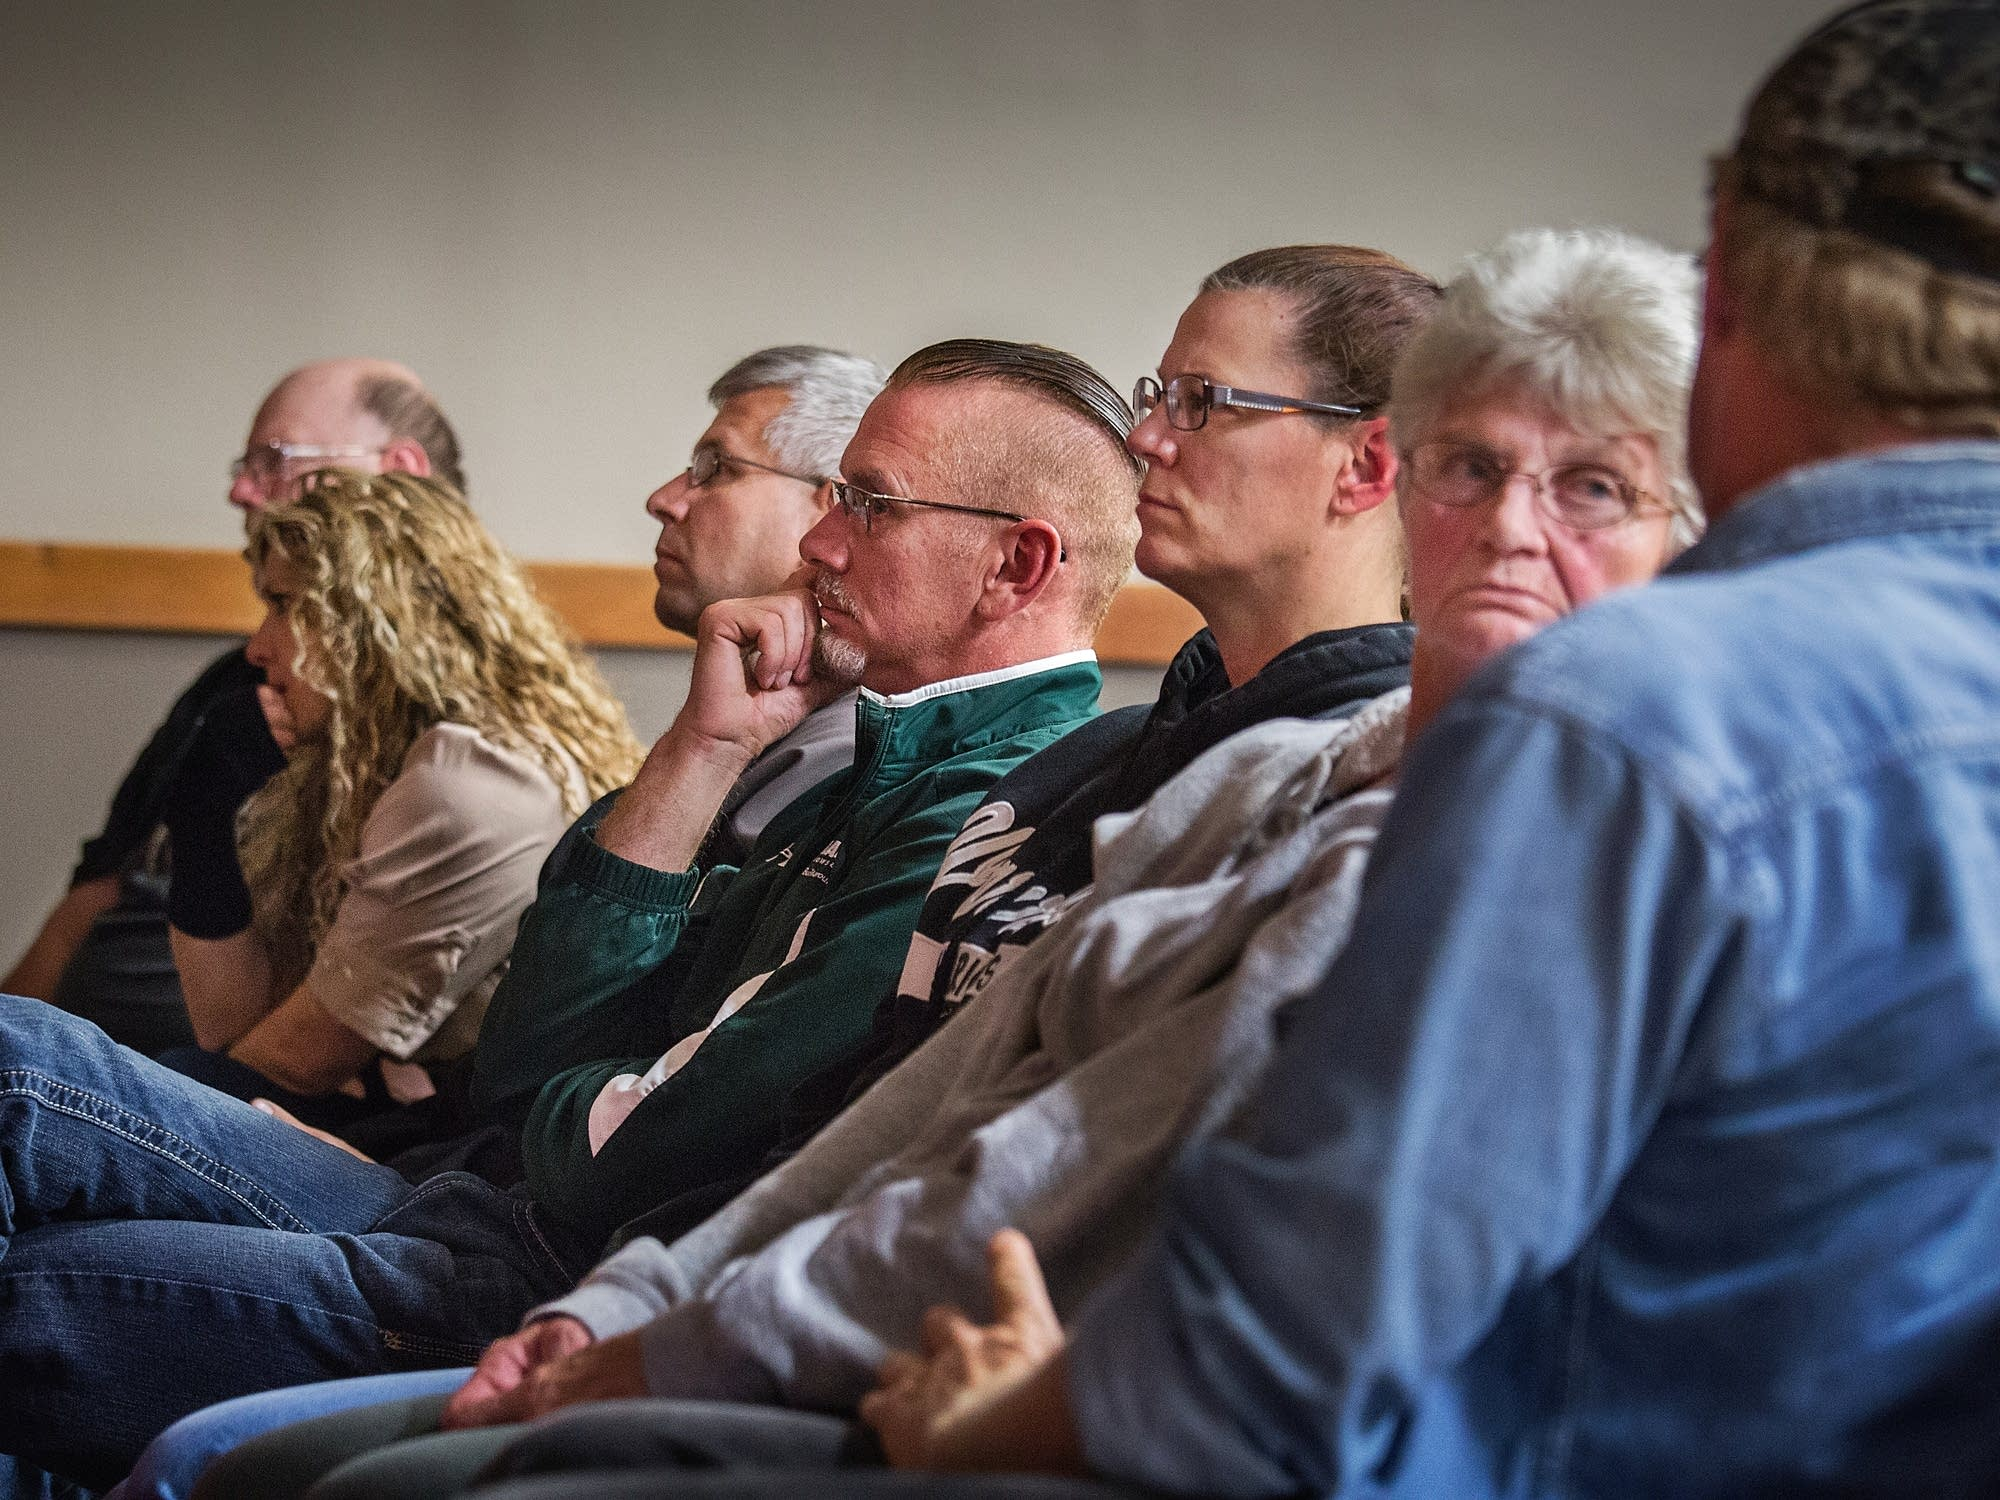 warroad muslim The spread of islamophobia via the christian right  about 120 people filled the warroad baptist church to hear former fbi agent john guandolo warn them about what he calls the threat of islam.